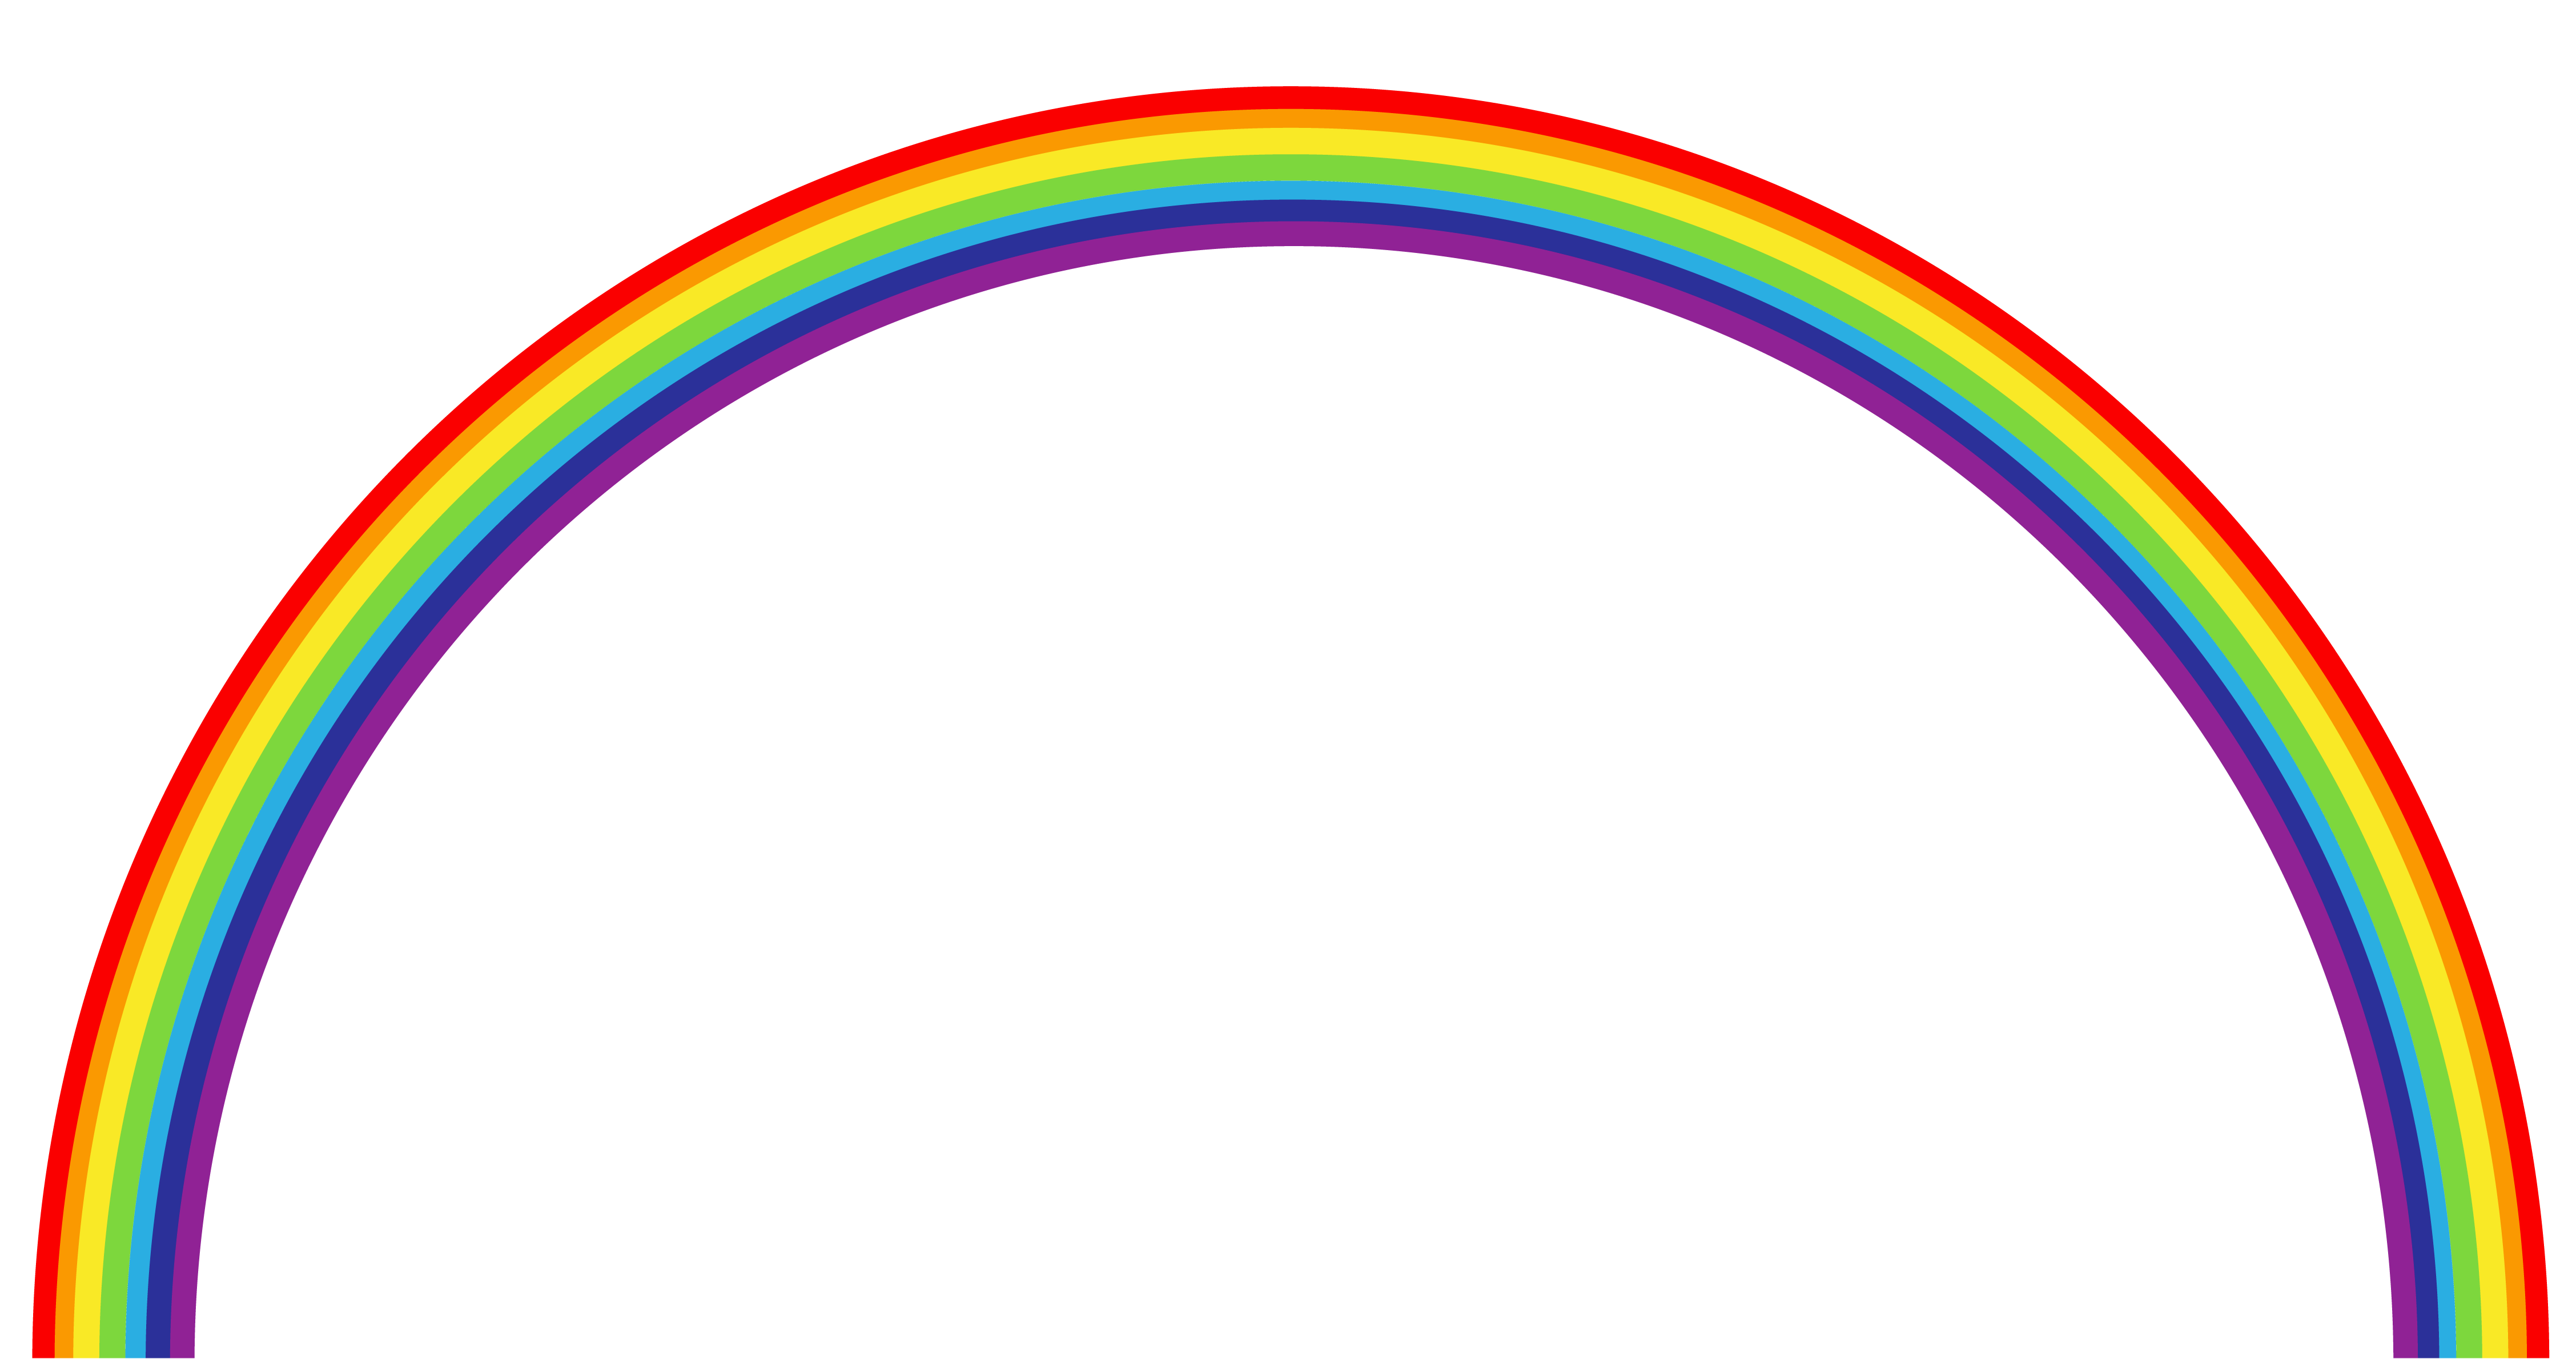 Rainbow PNG Transparent Clipart - Rainbow HD PNG